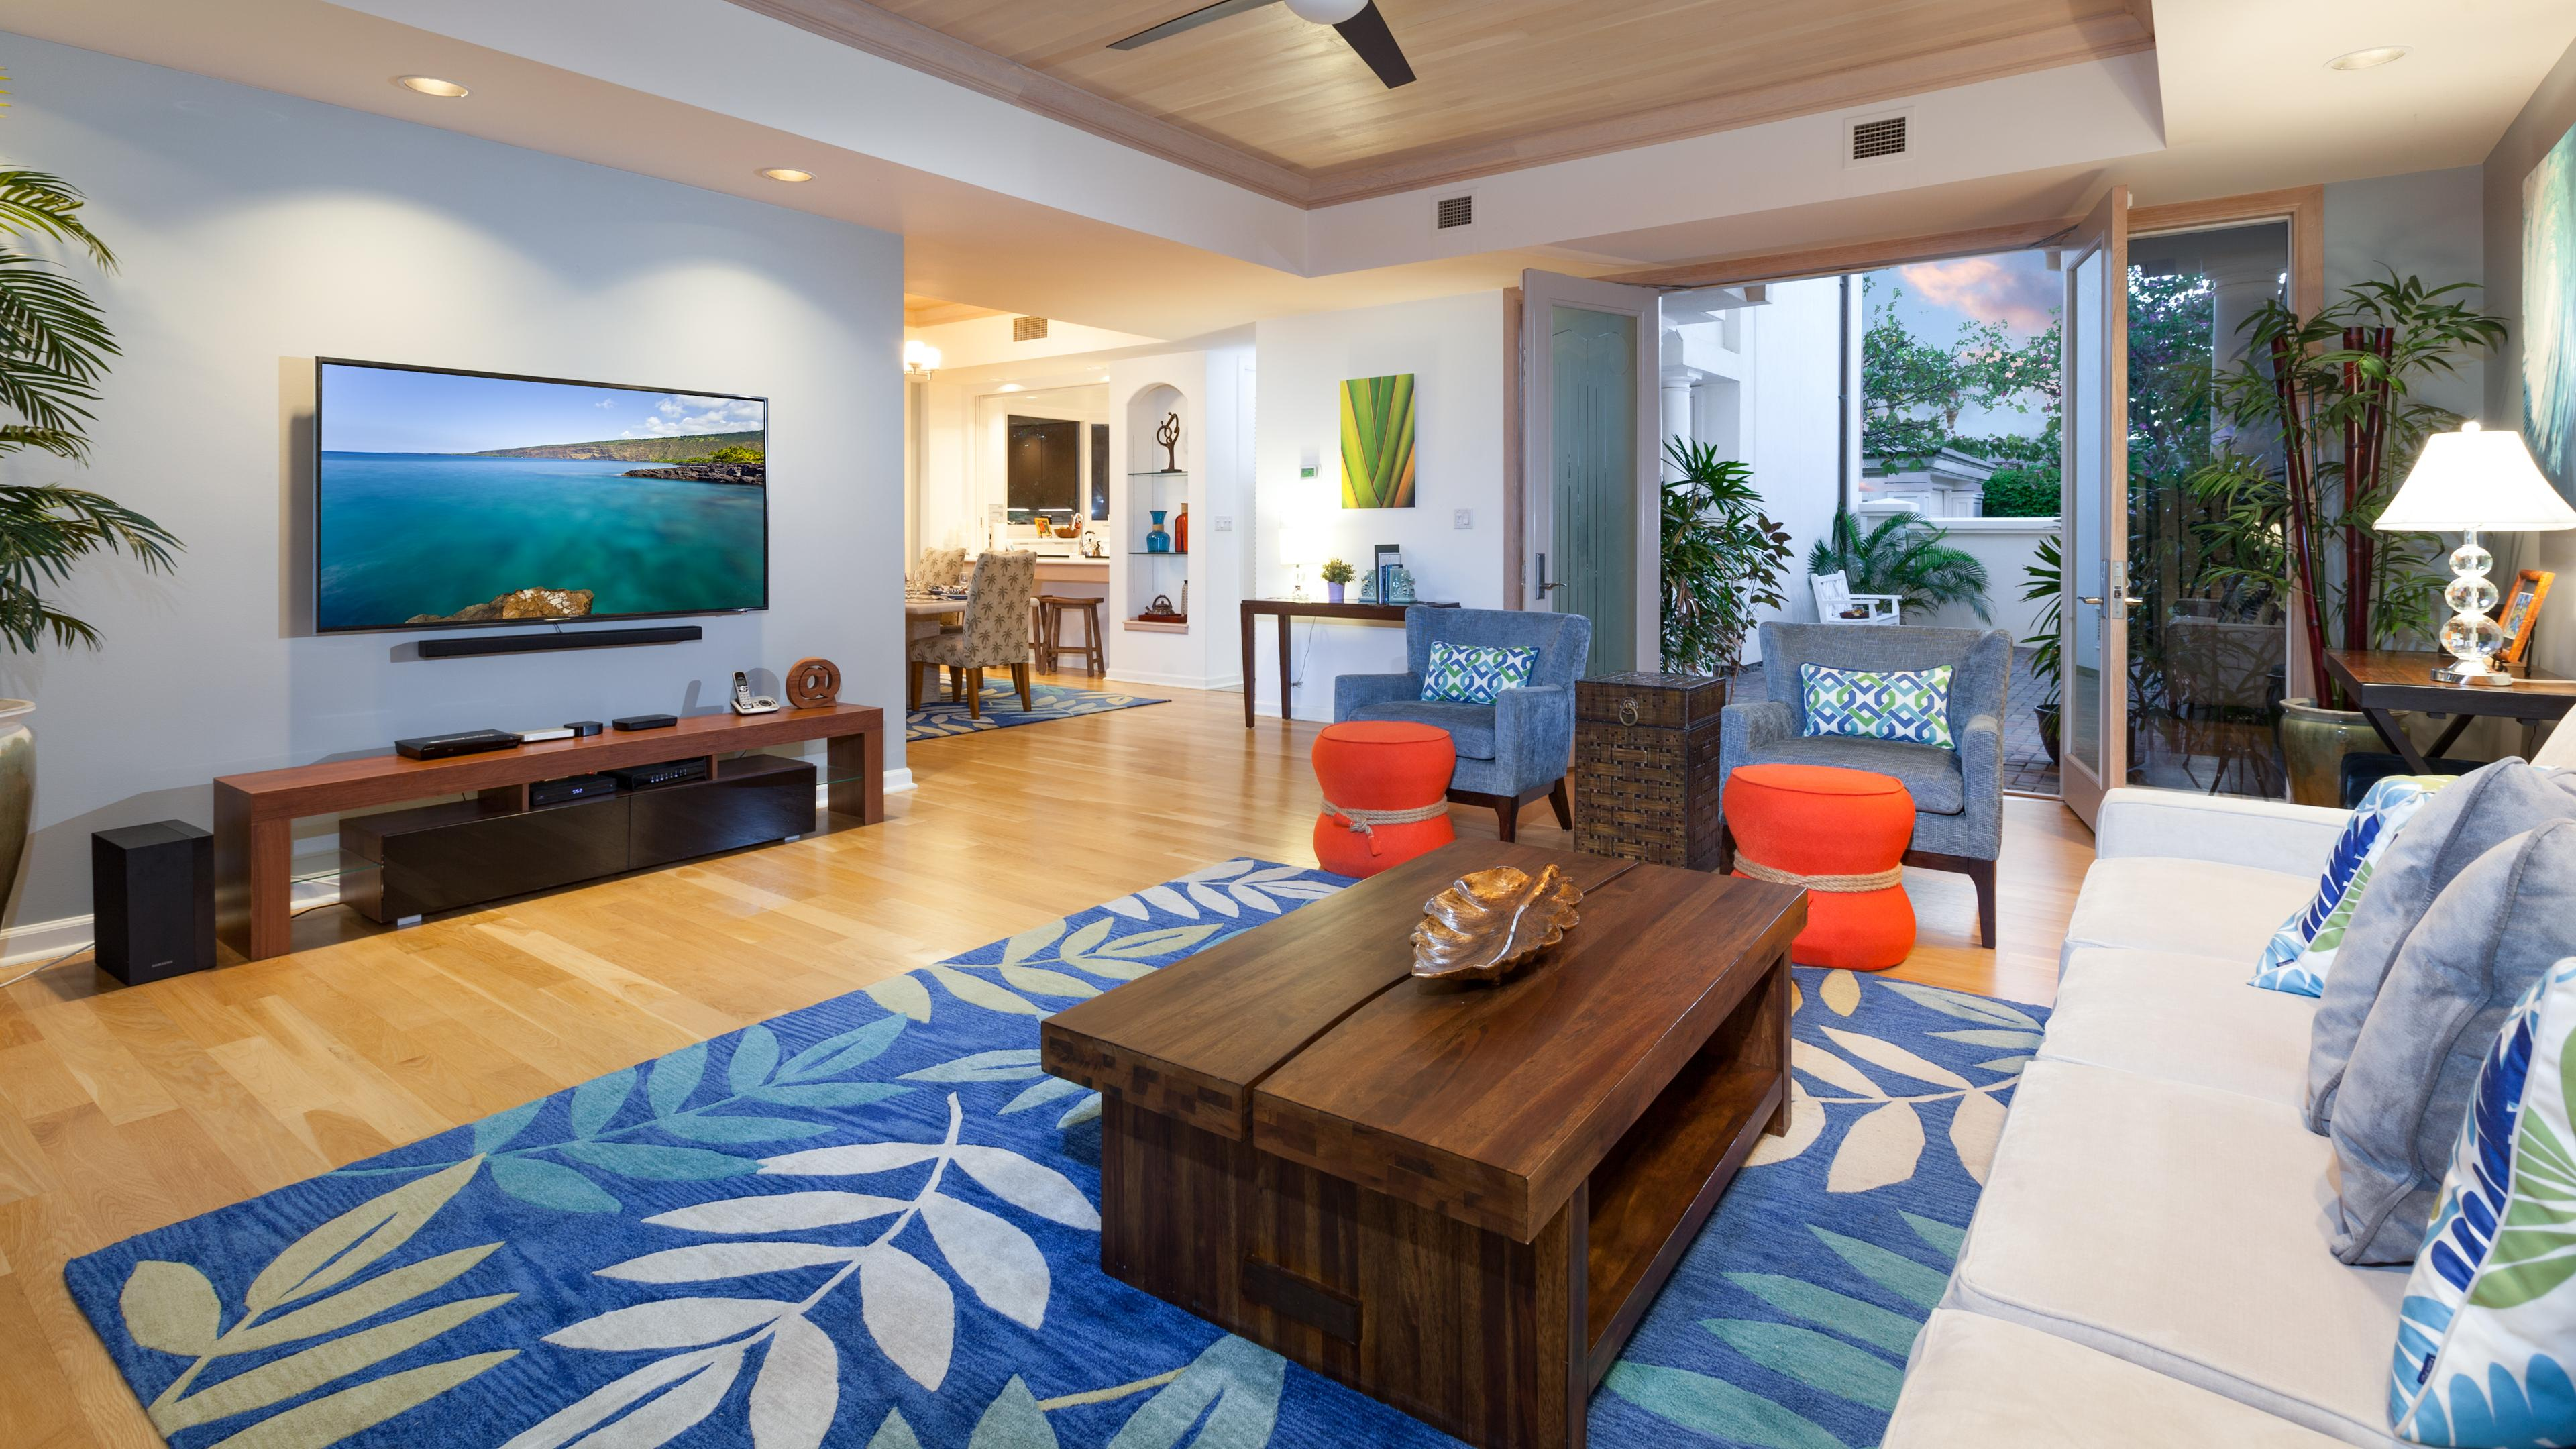 Luxurious Islands at Mauna Lani 2BR with Dual Masters